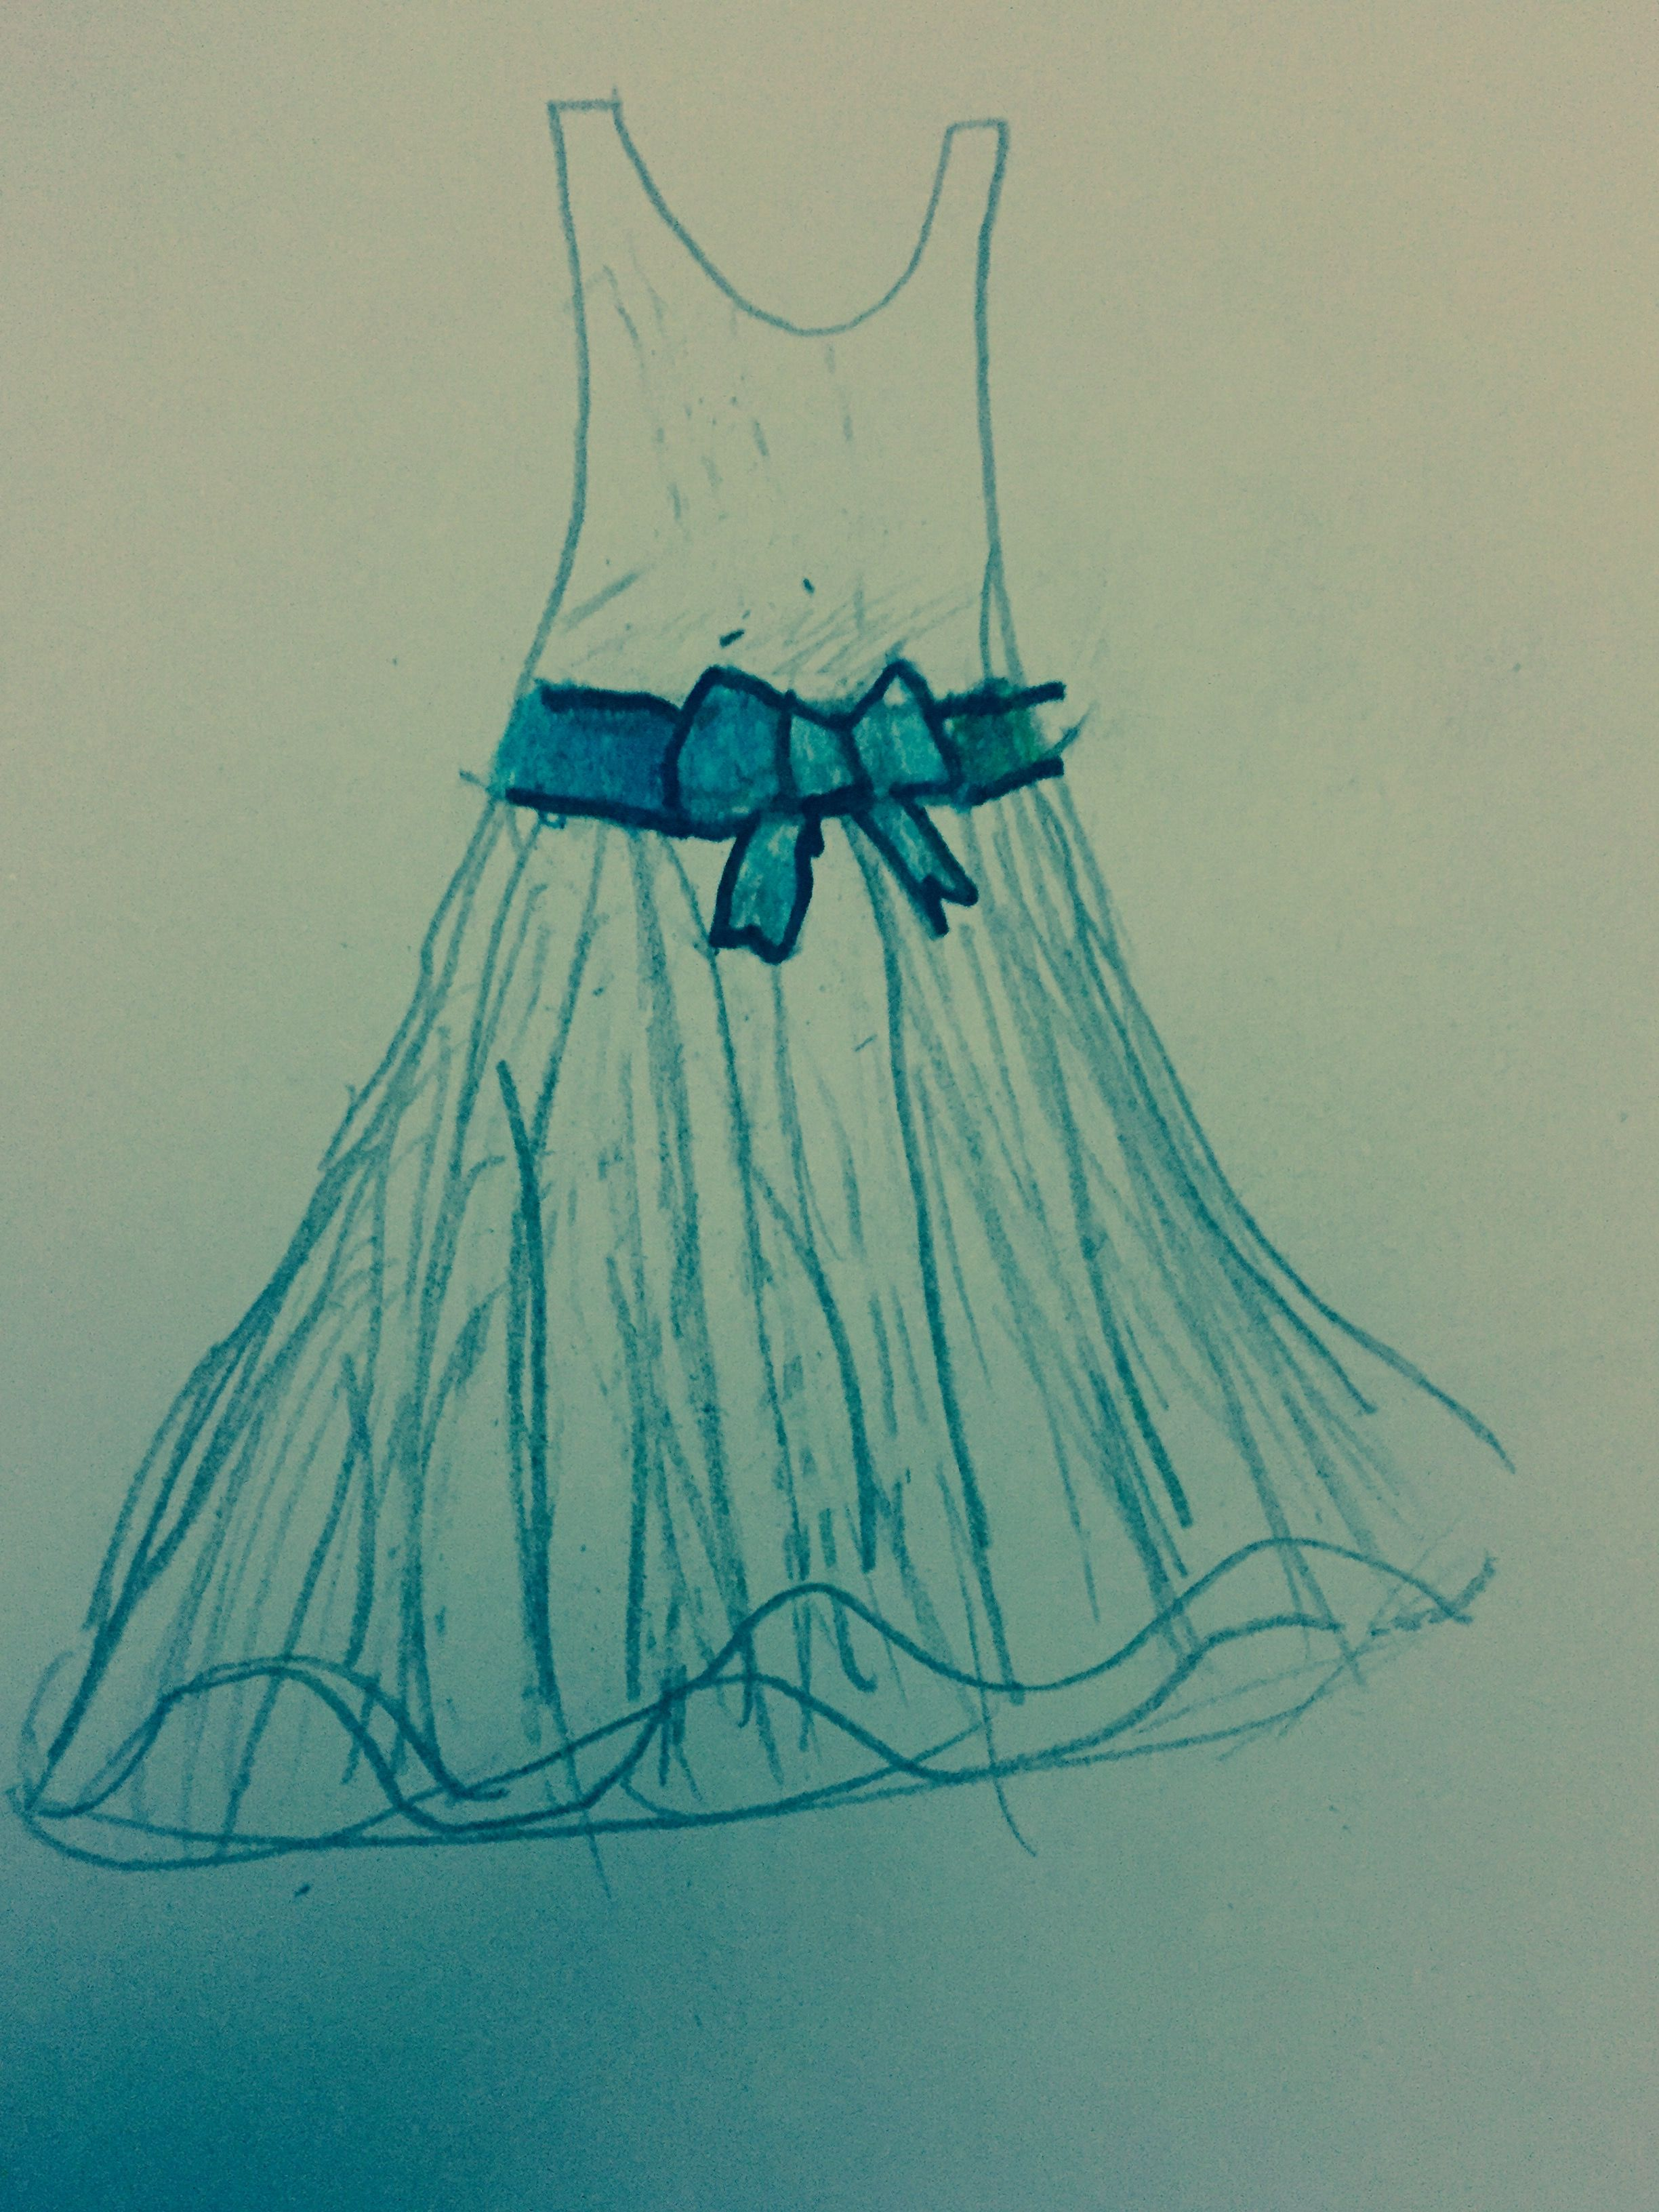 Pin by Caitlyn on Wedding dress and flower girl sketches | Pinterest ...